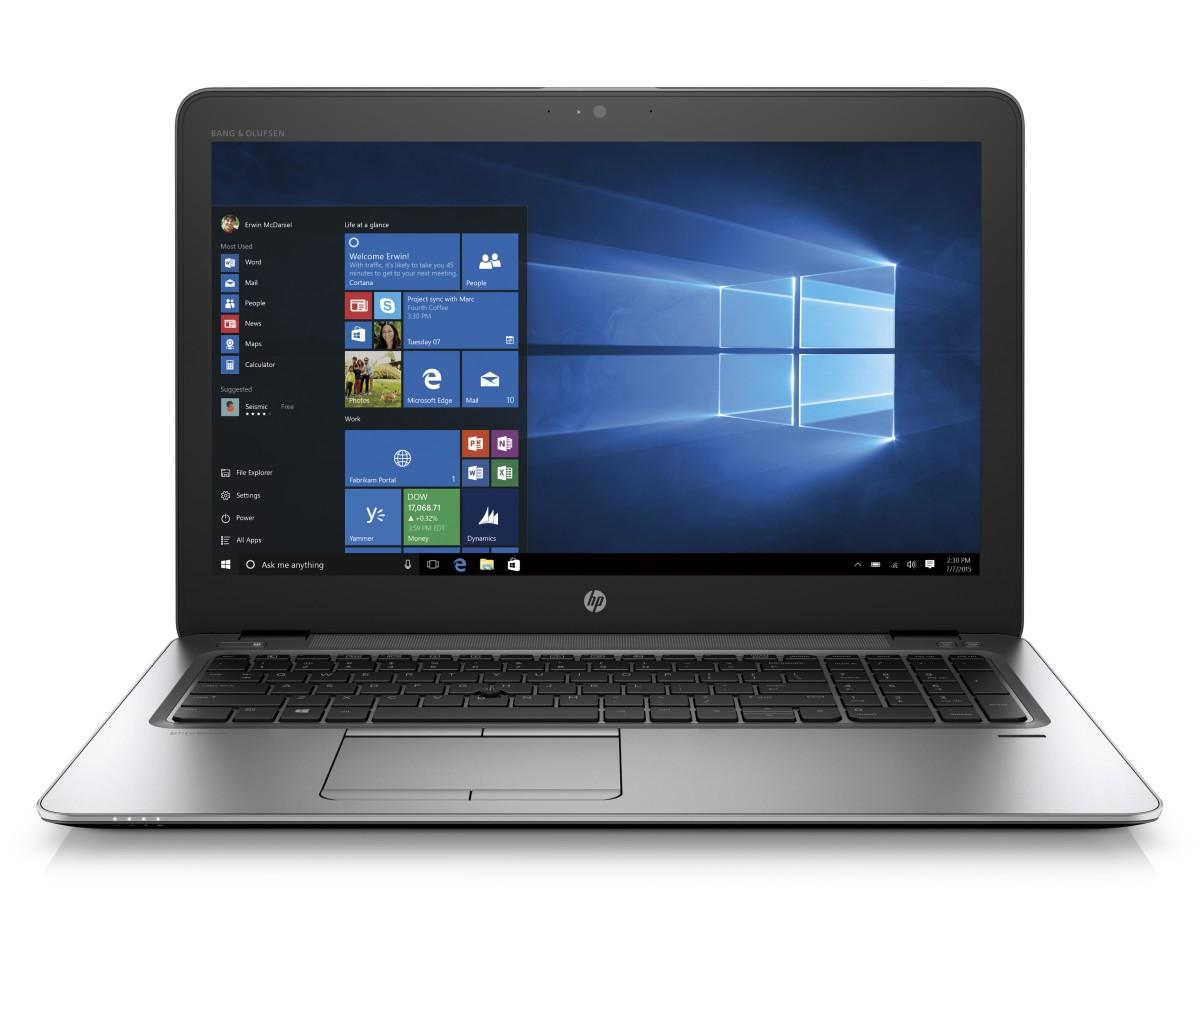 HP Elitebook 850 G4 Z2W82EA